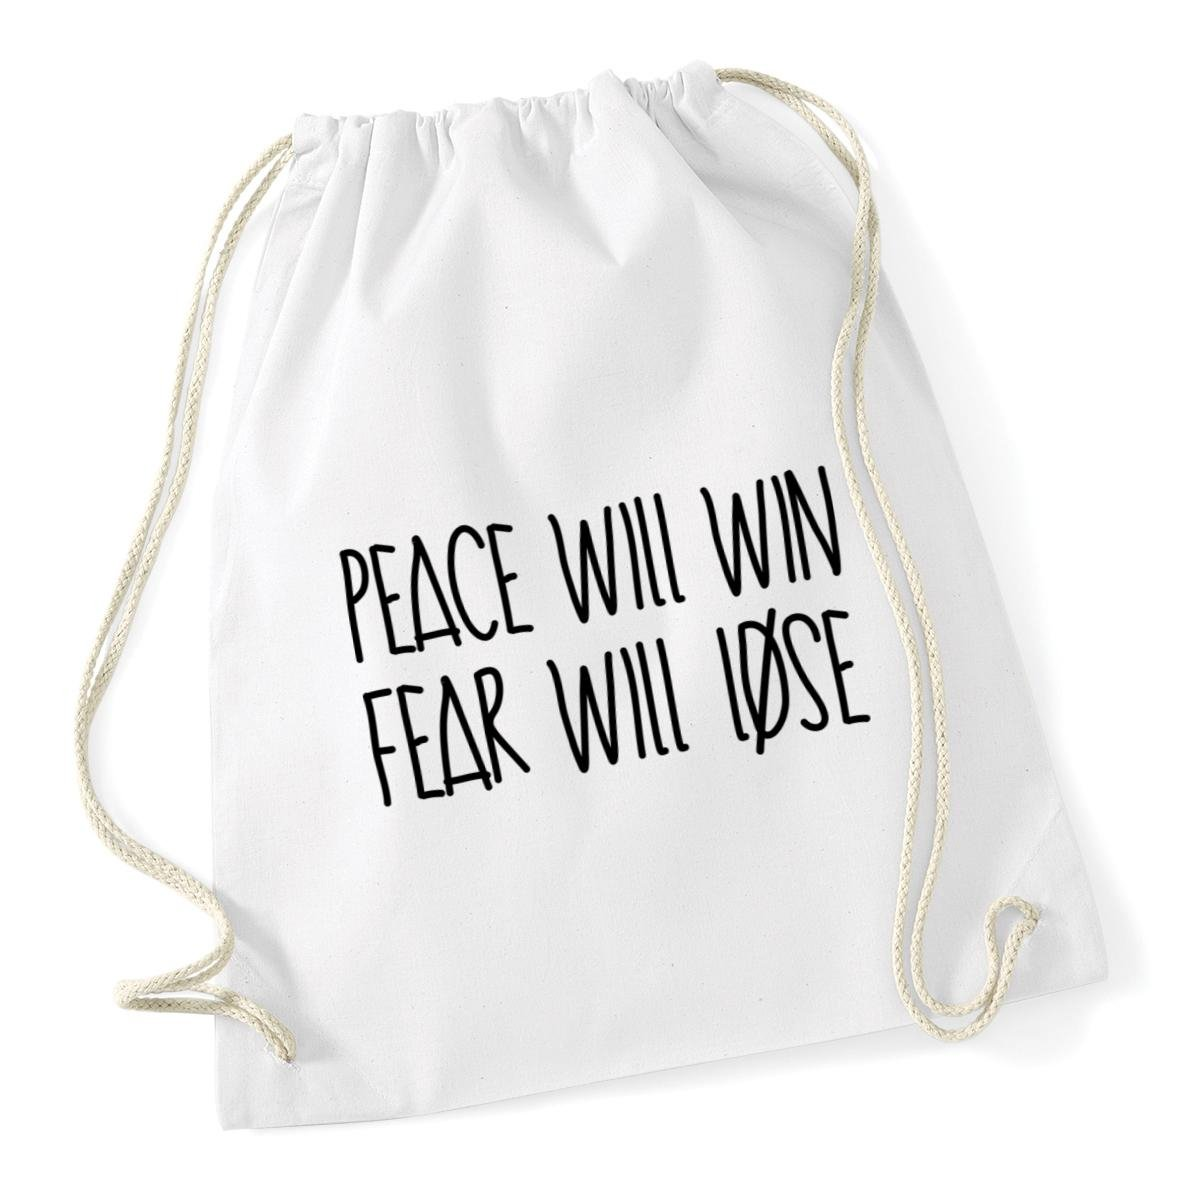 HippoWarehouse Peace will win and fear will lose Drawstring Cotton School Gym Kid Bag Sack 37cm x 46cm, 12 litres 7928-DSB-Black